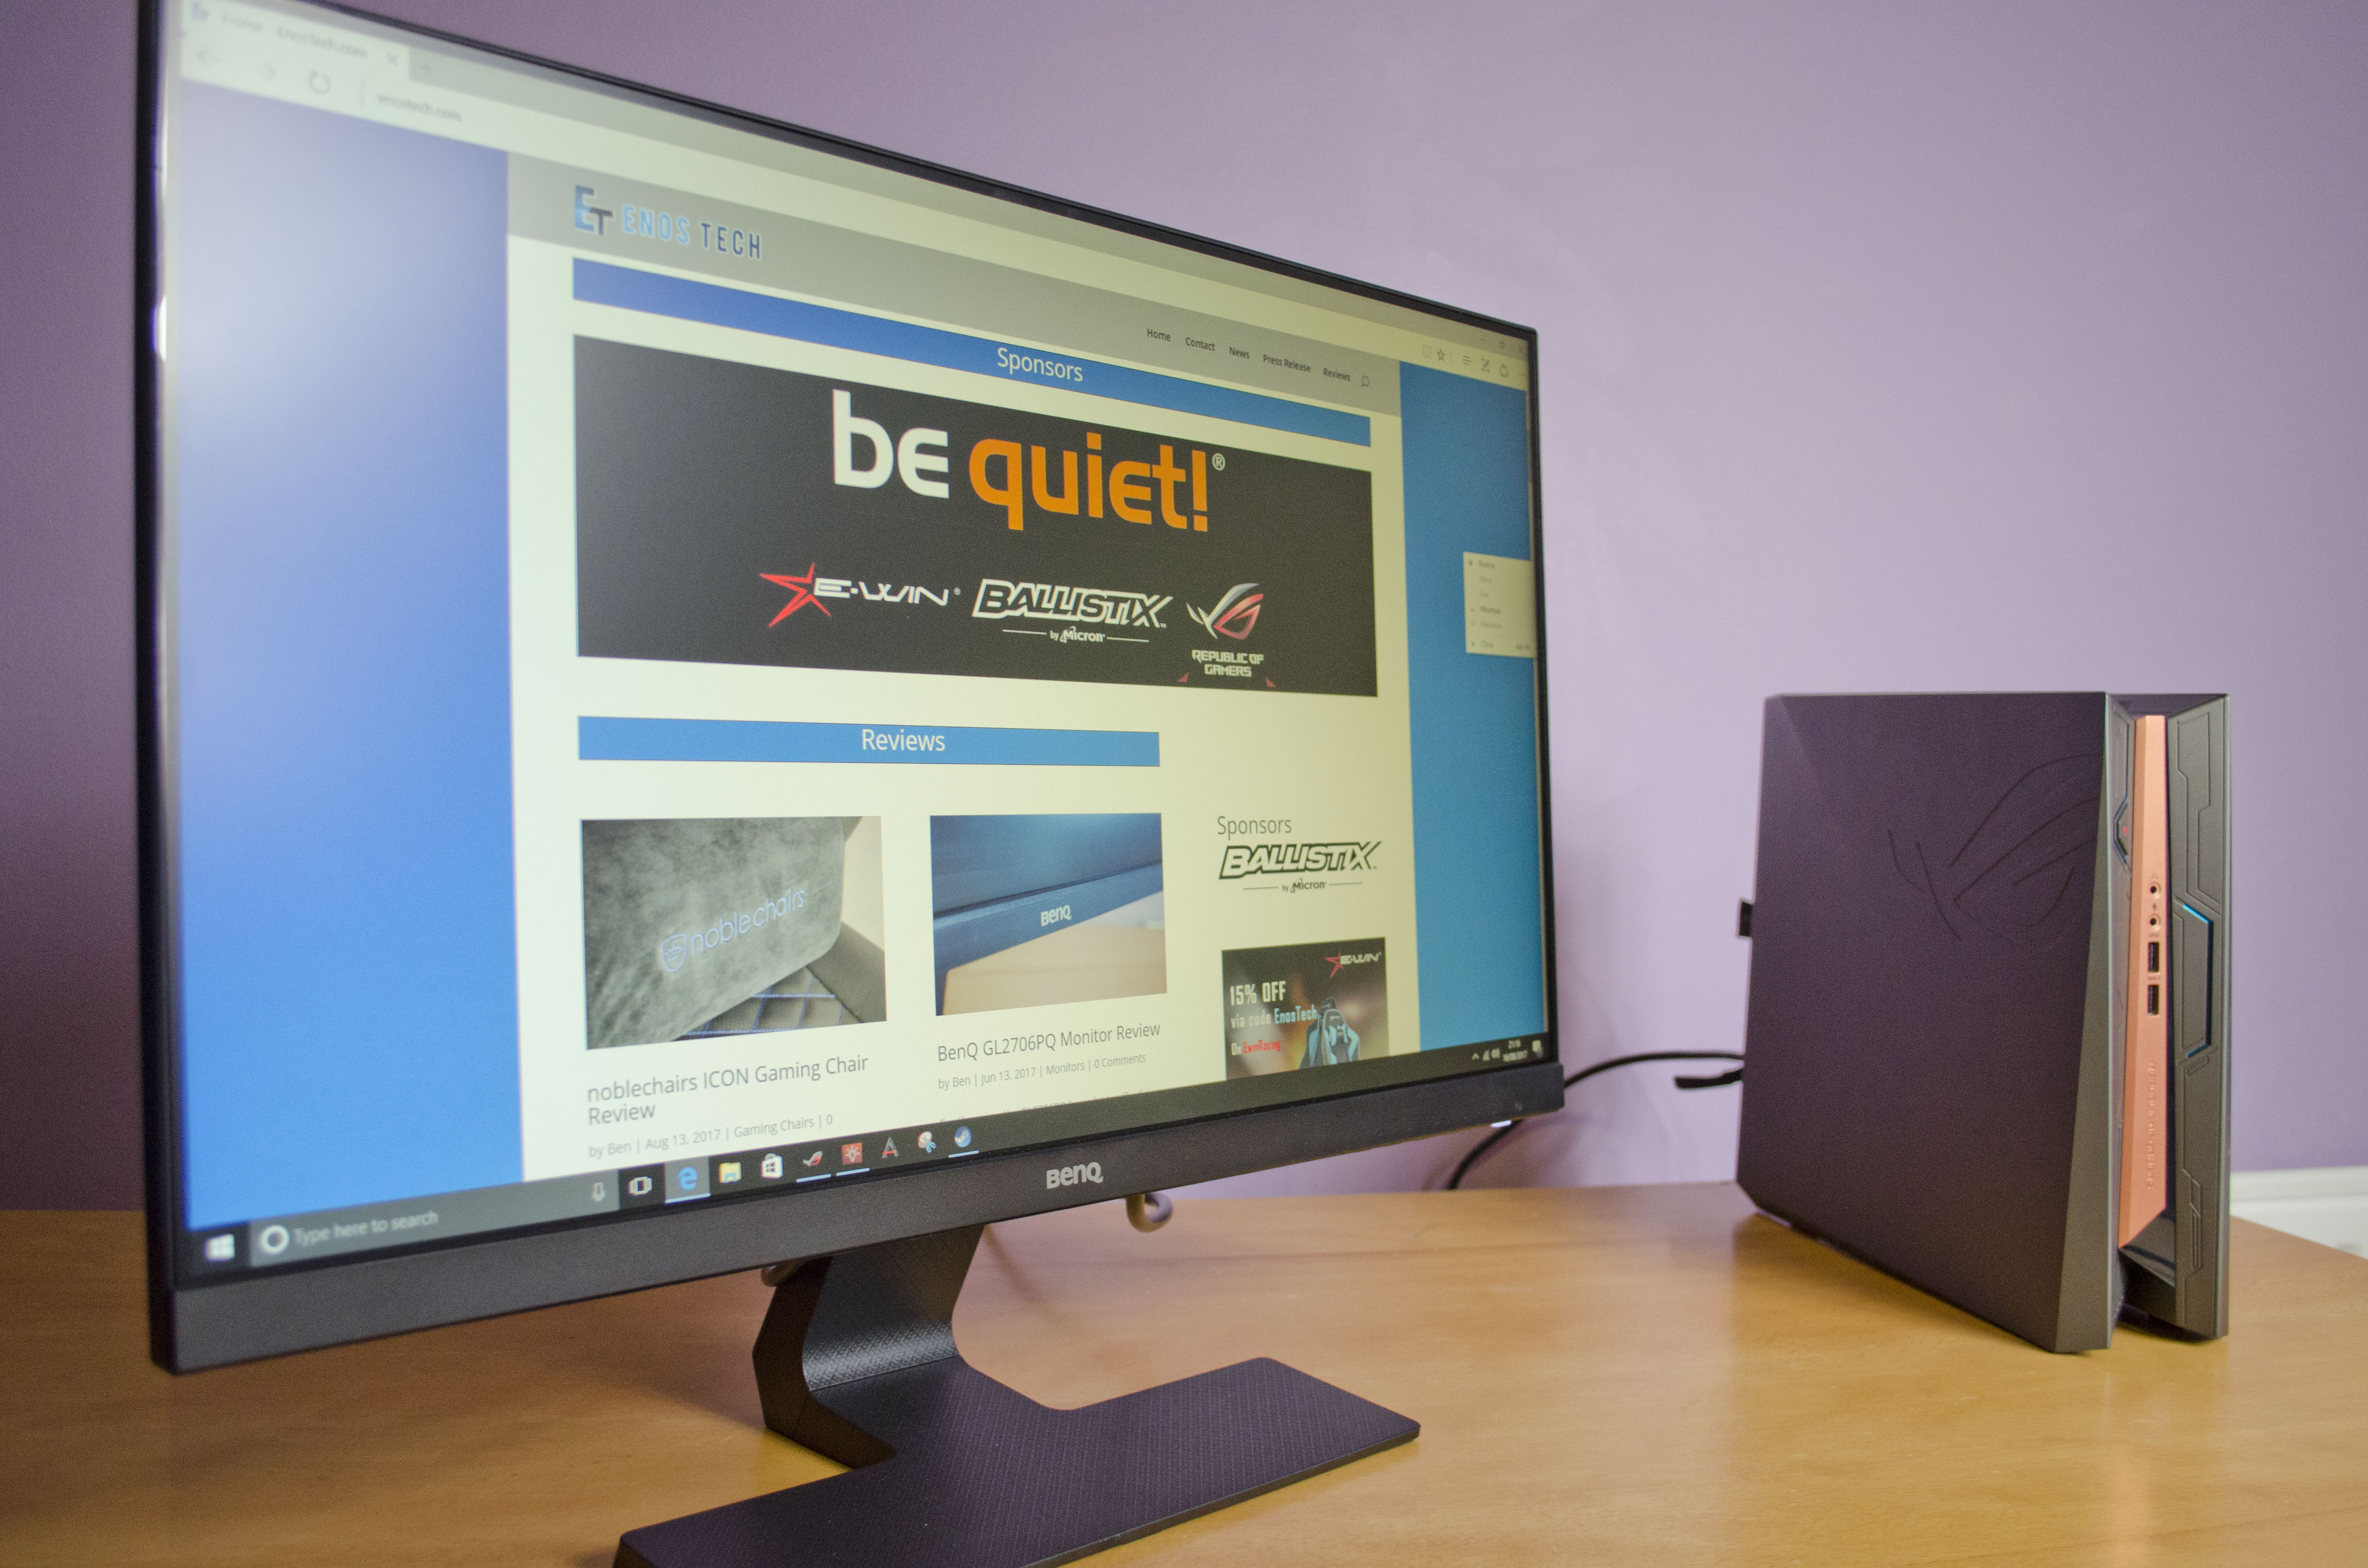 BenQ GL2580HM Monitor Review